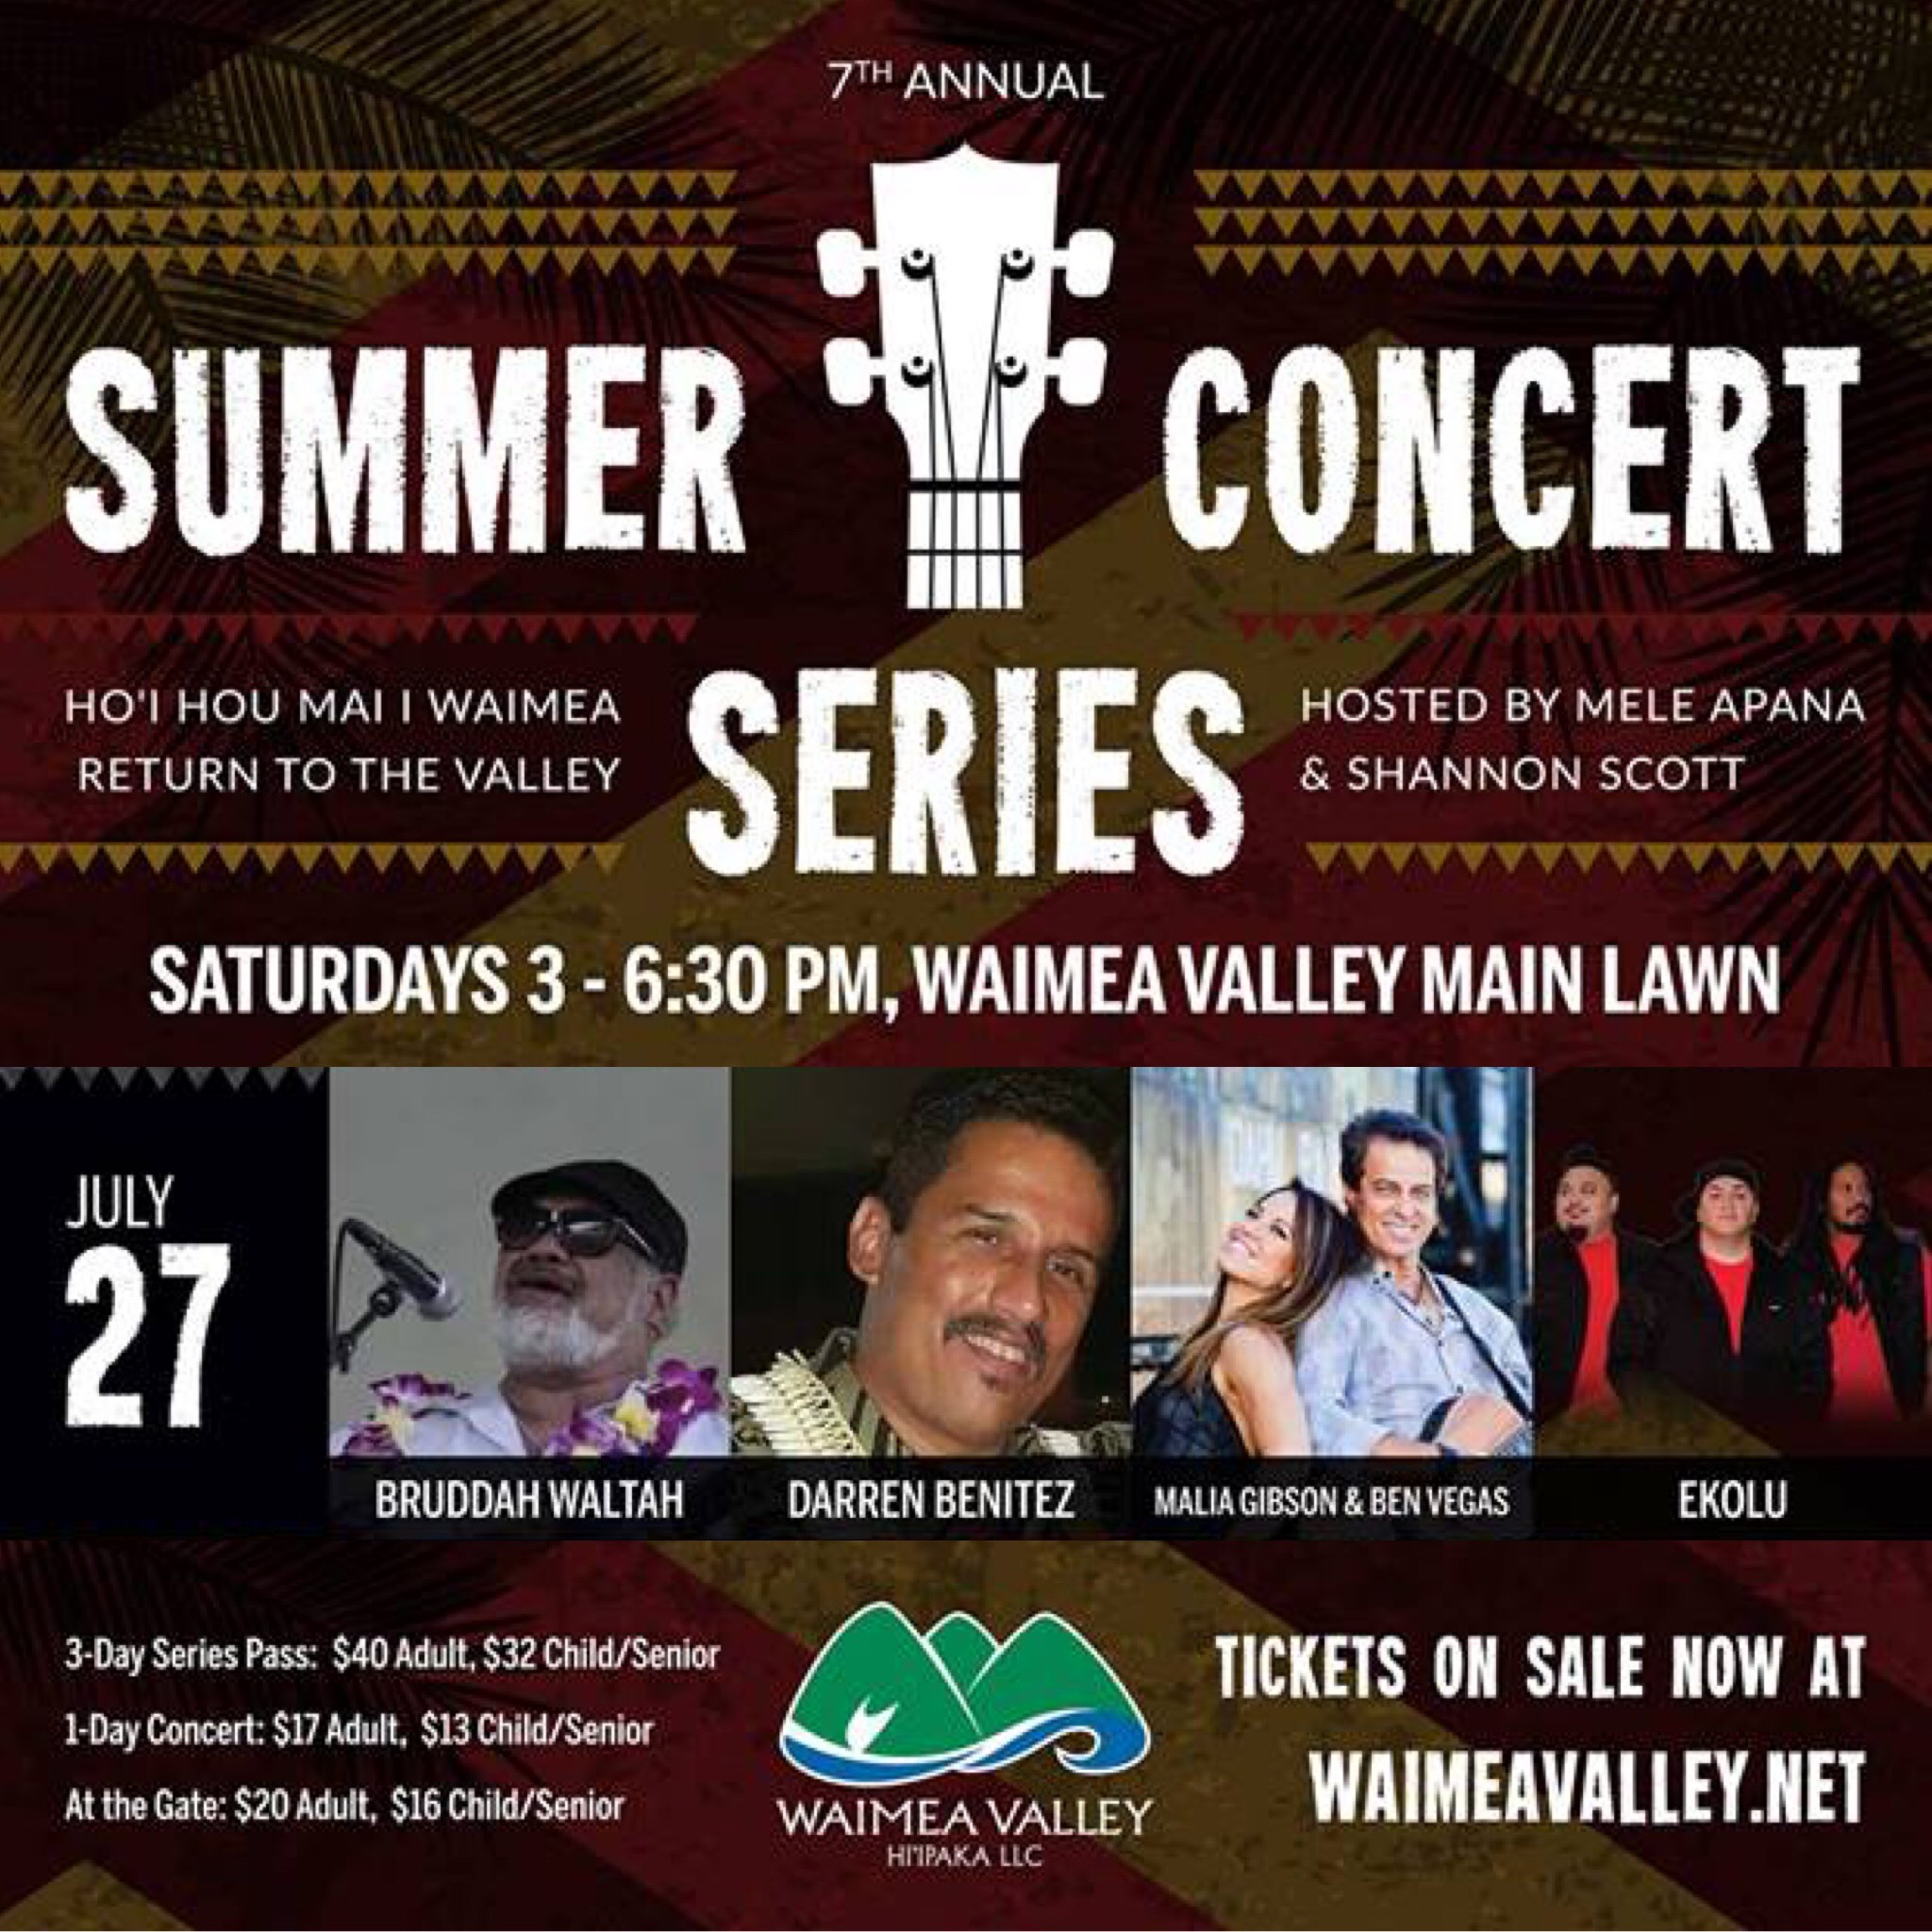 waimea valley summer concert series 7-27.JPG